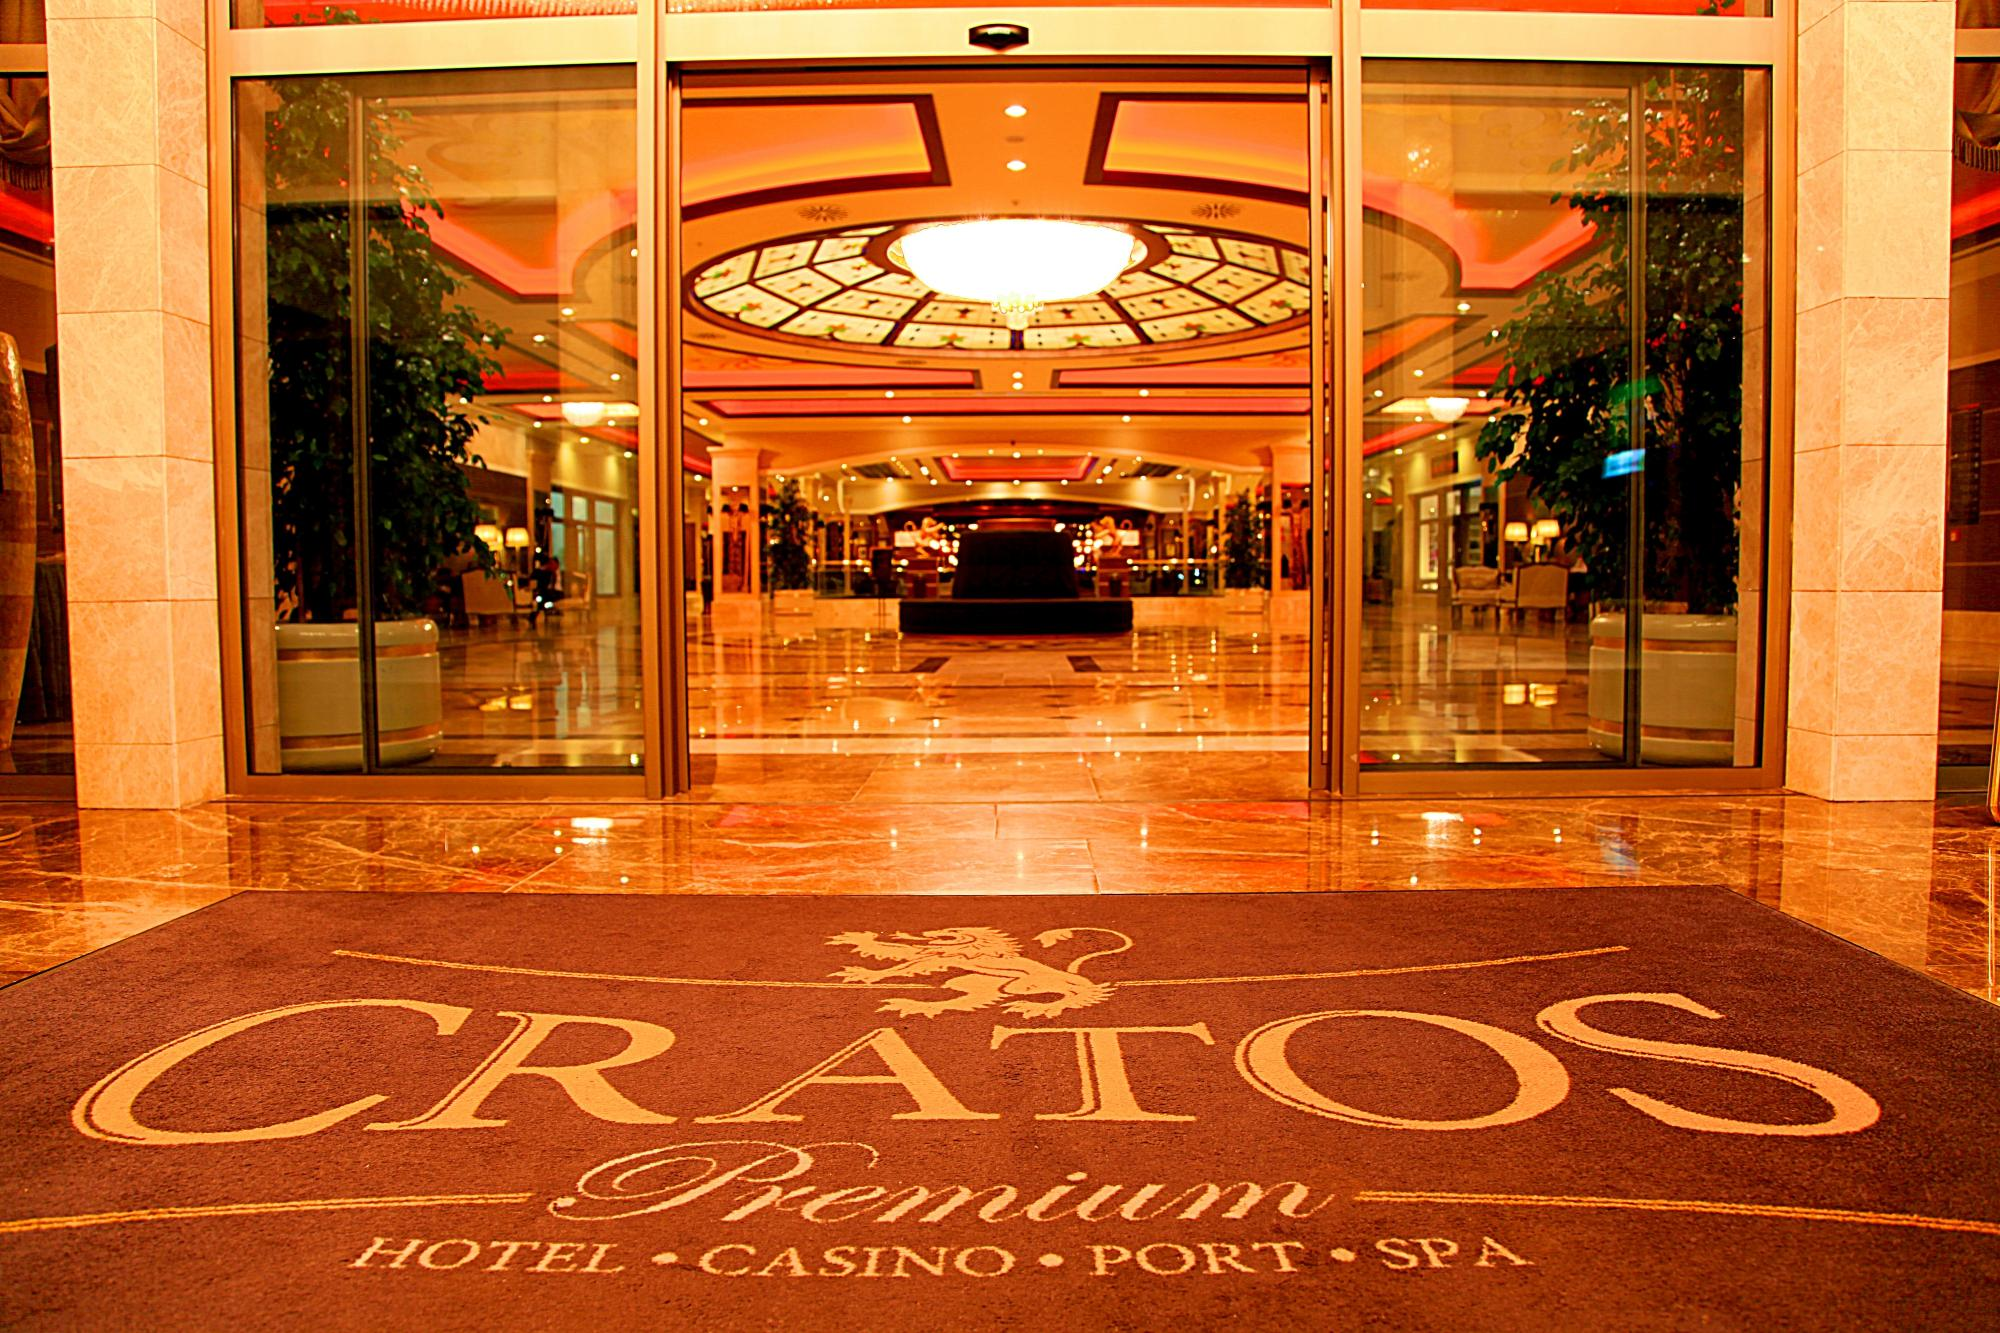 Cratos Premium Hotel, Casino, Port & Spa